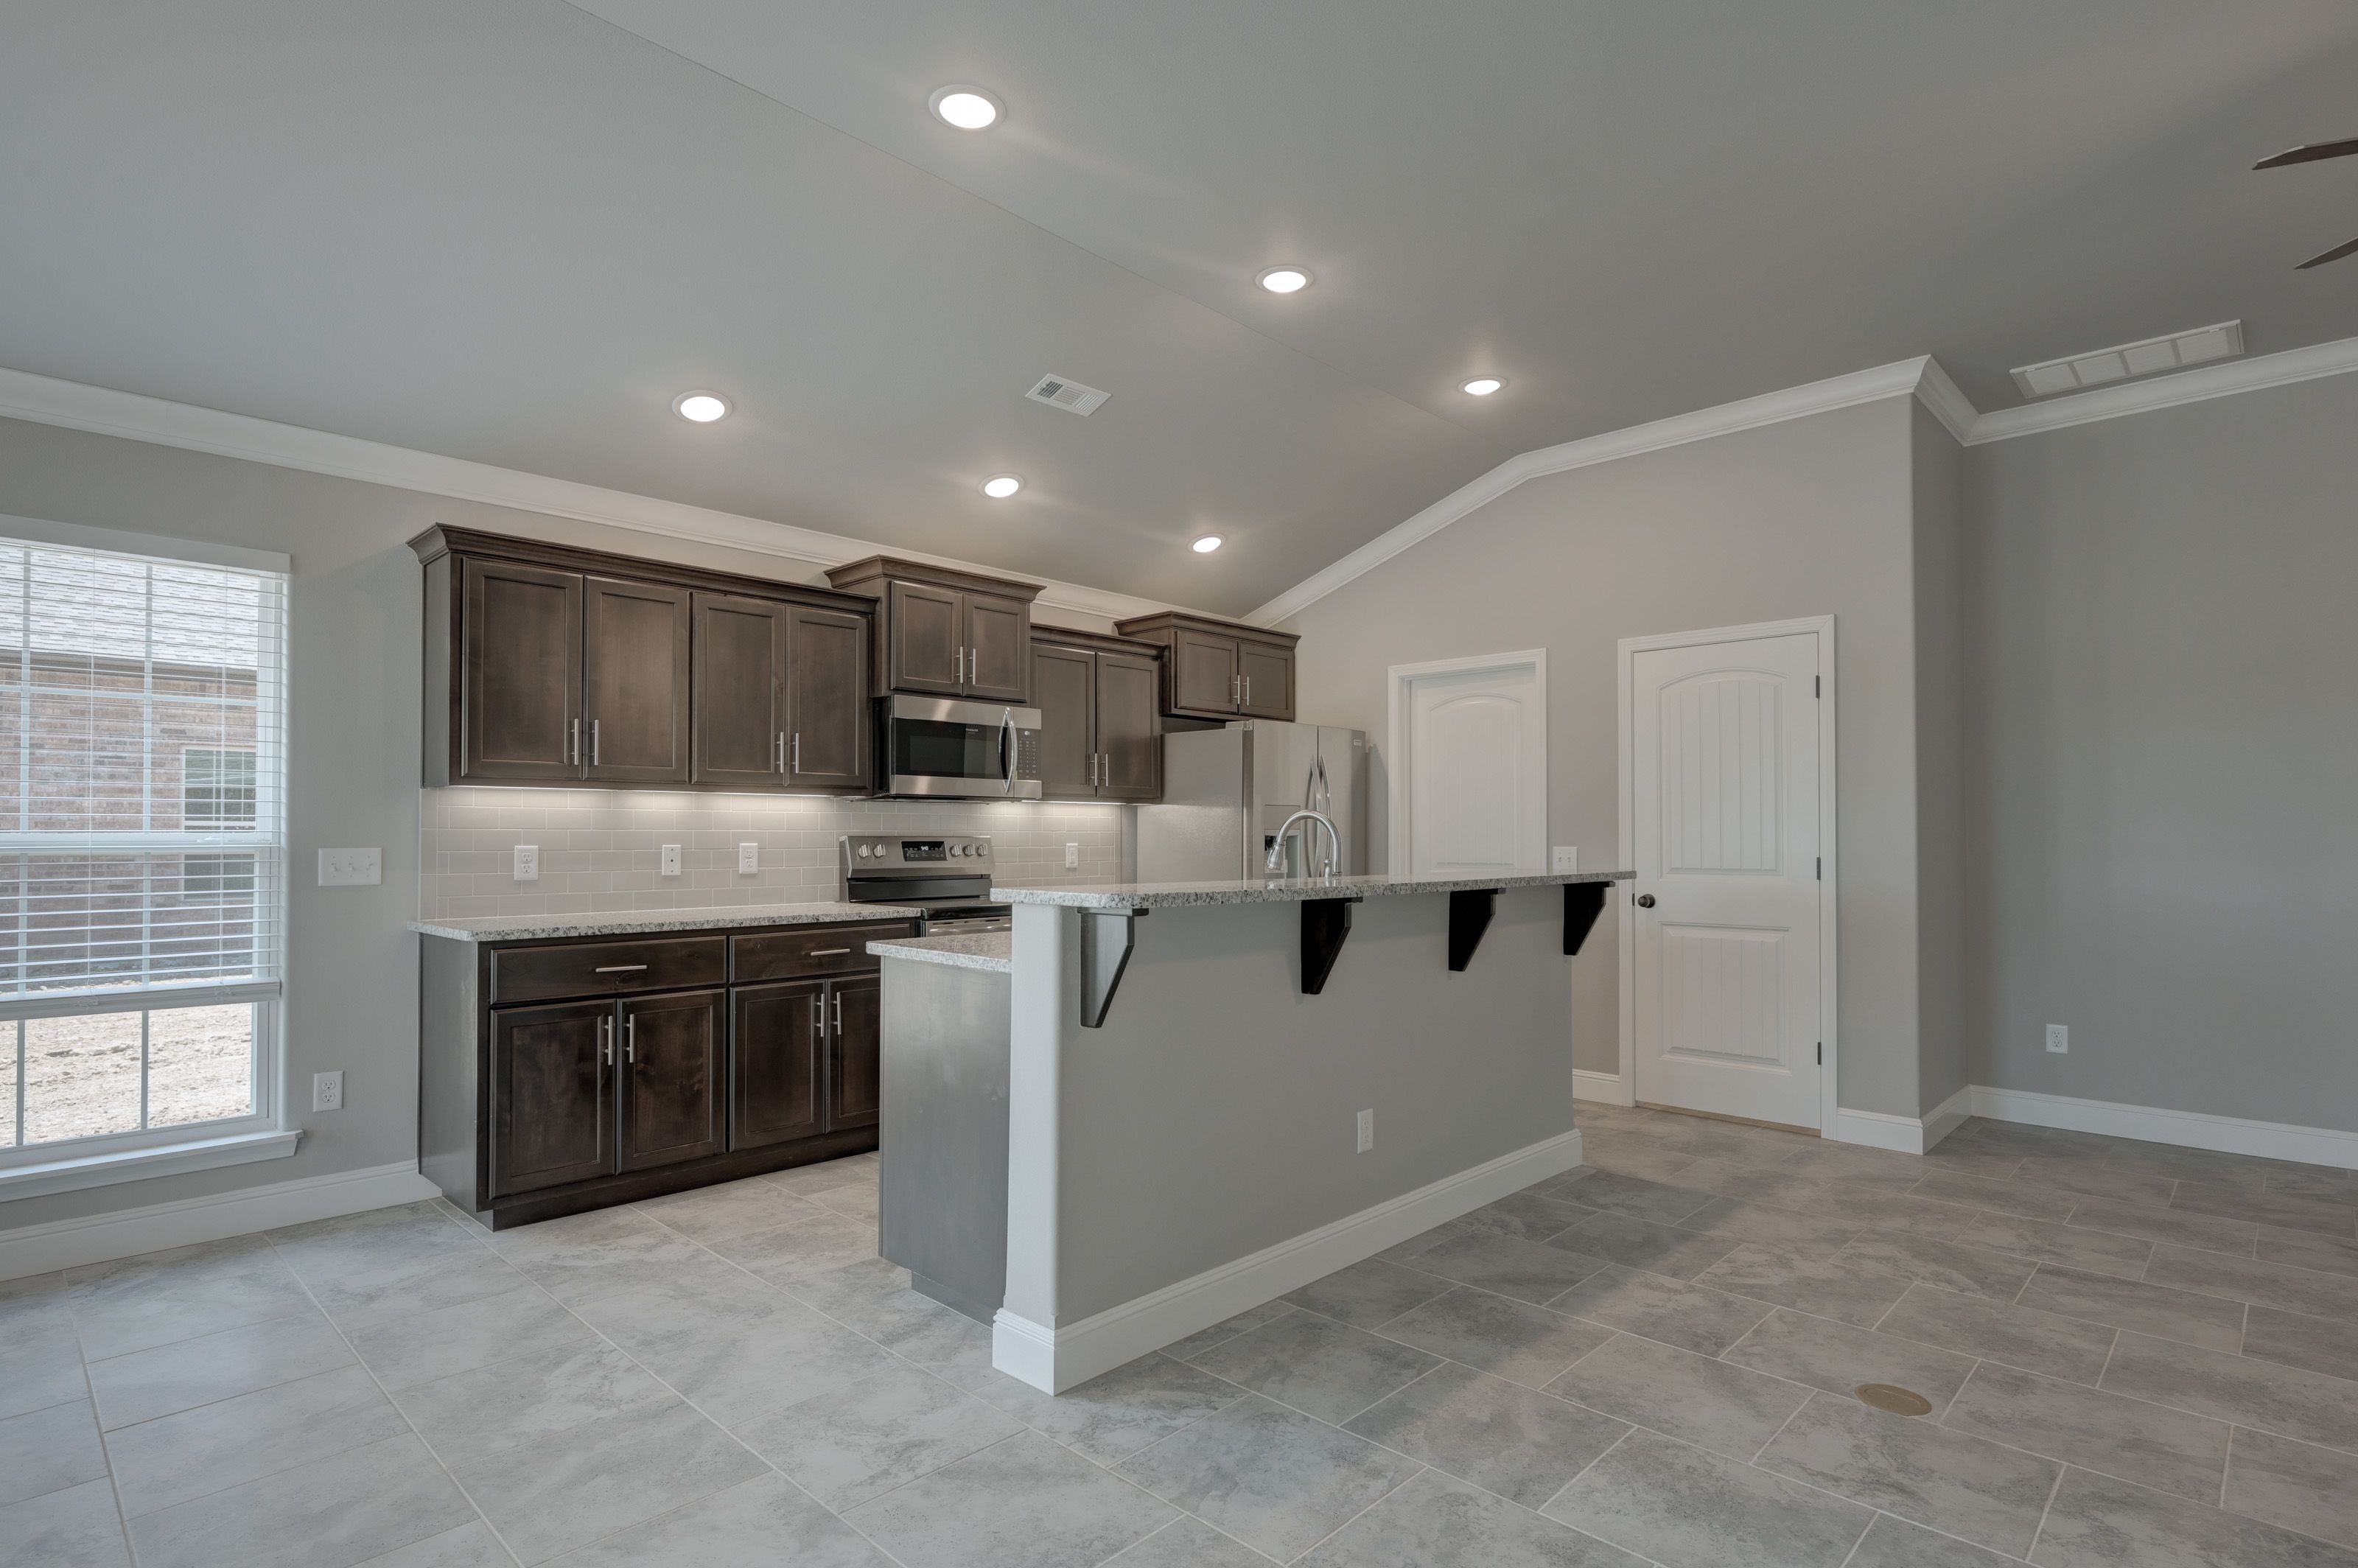 Kitchen featured in the 1700KI Series By Schuber Mitchell Homes in Joplin, MO